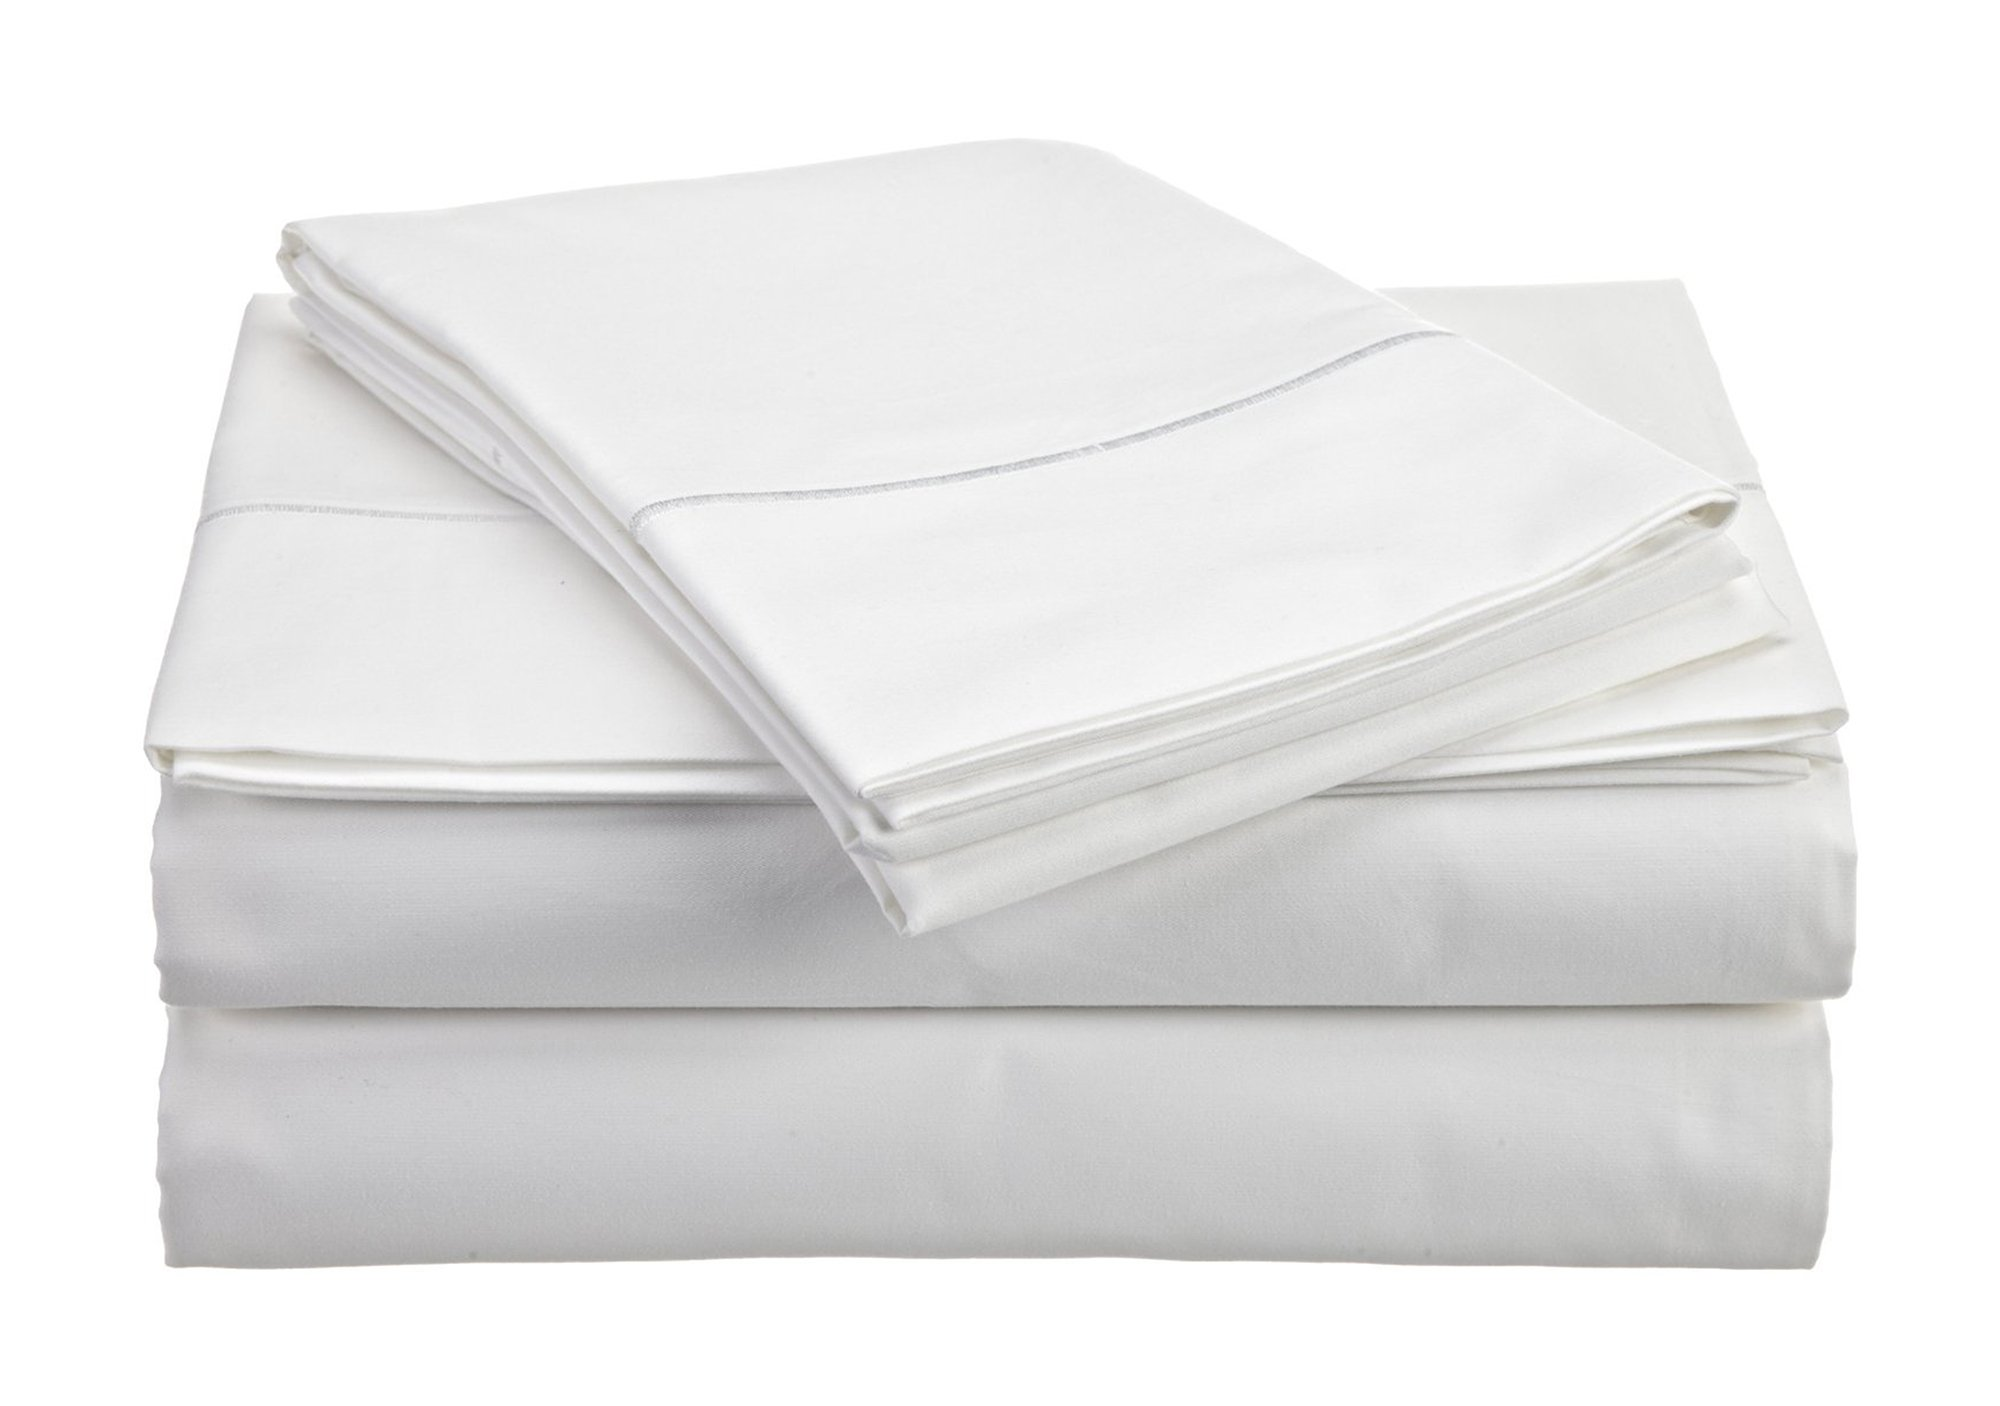 Chateau Home Collection 800-Thread-Count Egyptian Cotton Deep Pocket Sateen Weave Sheet Set (SPLIT KING, White)